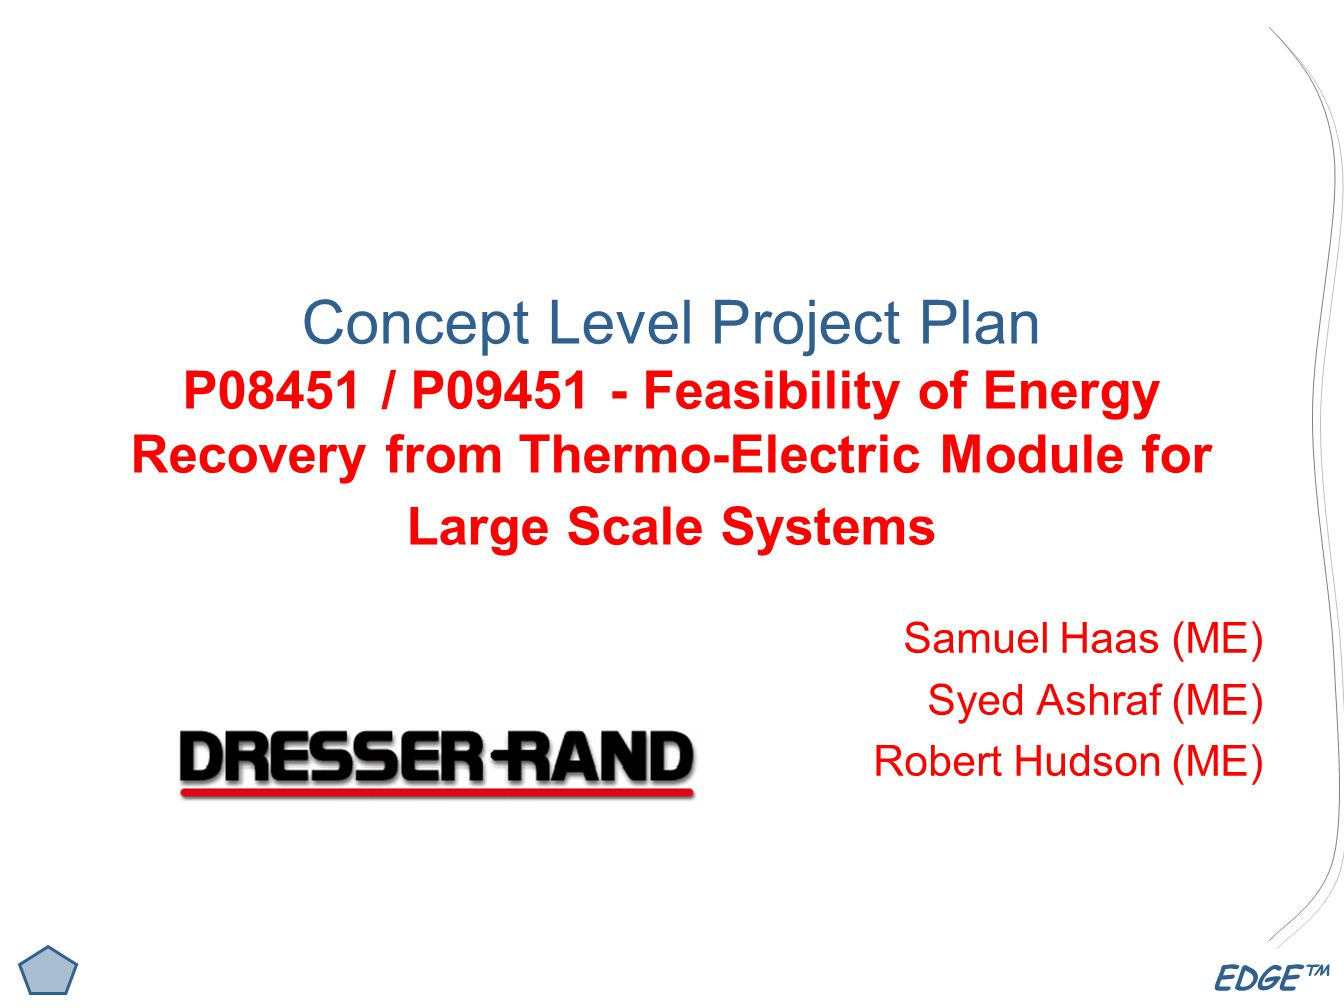 EDGE™ Concept Level Project Plan P08451 / P Feasibility of Energy Recovery from Thermo-Electric Module for Large Scale Systems Samuel Haas (ME) Syed Ashraf (ME) Robert Hudson (ME)